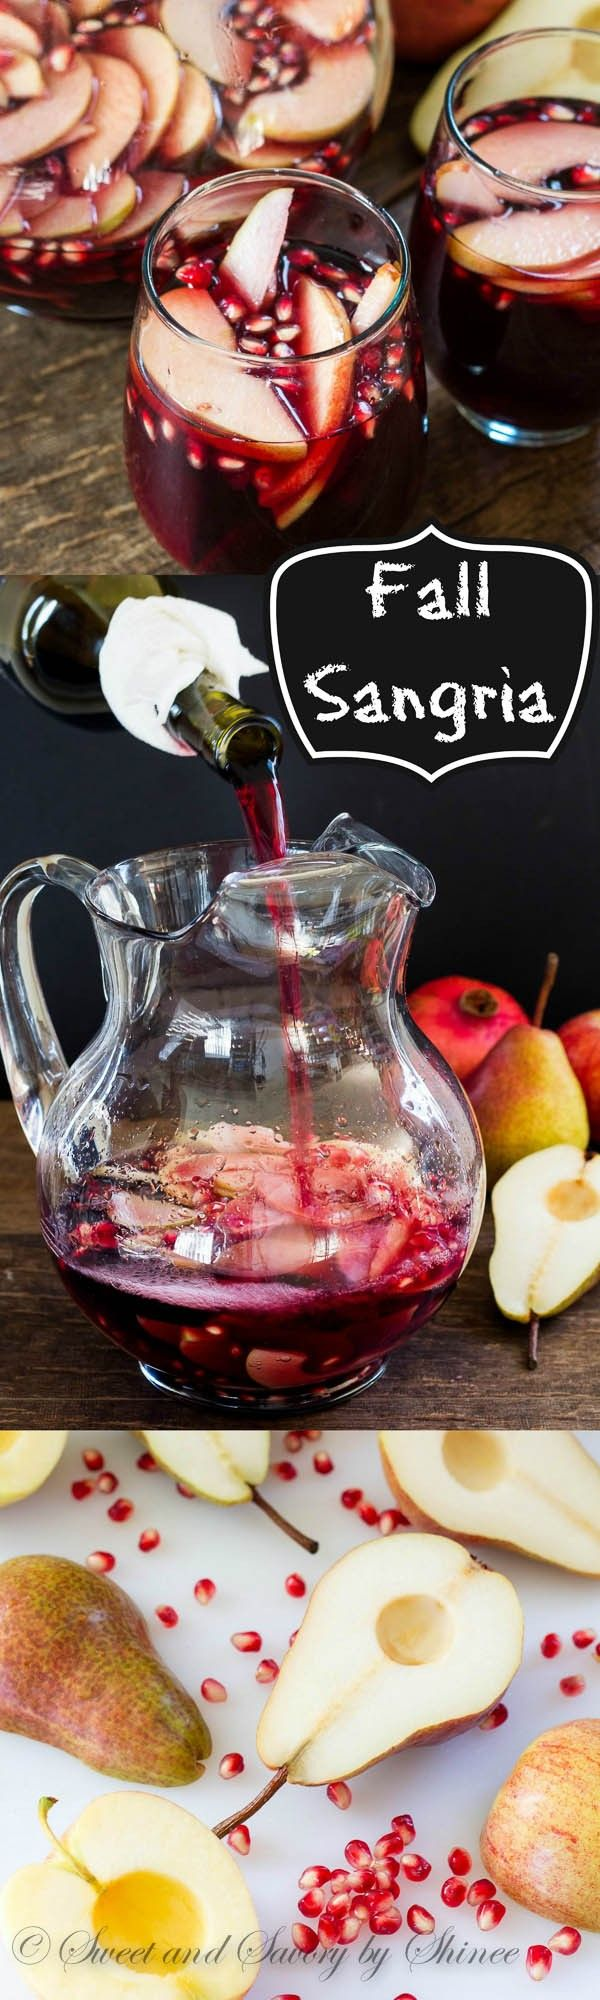 Sweet & Savory Fall Sangria